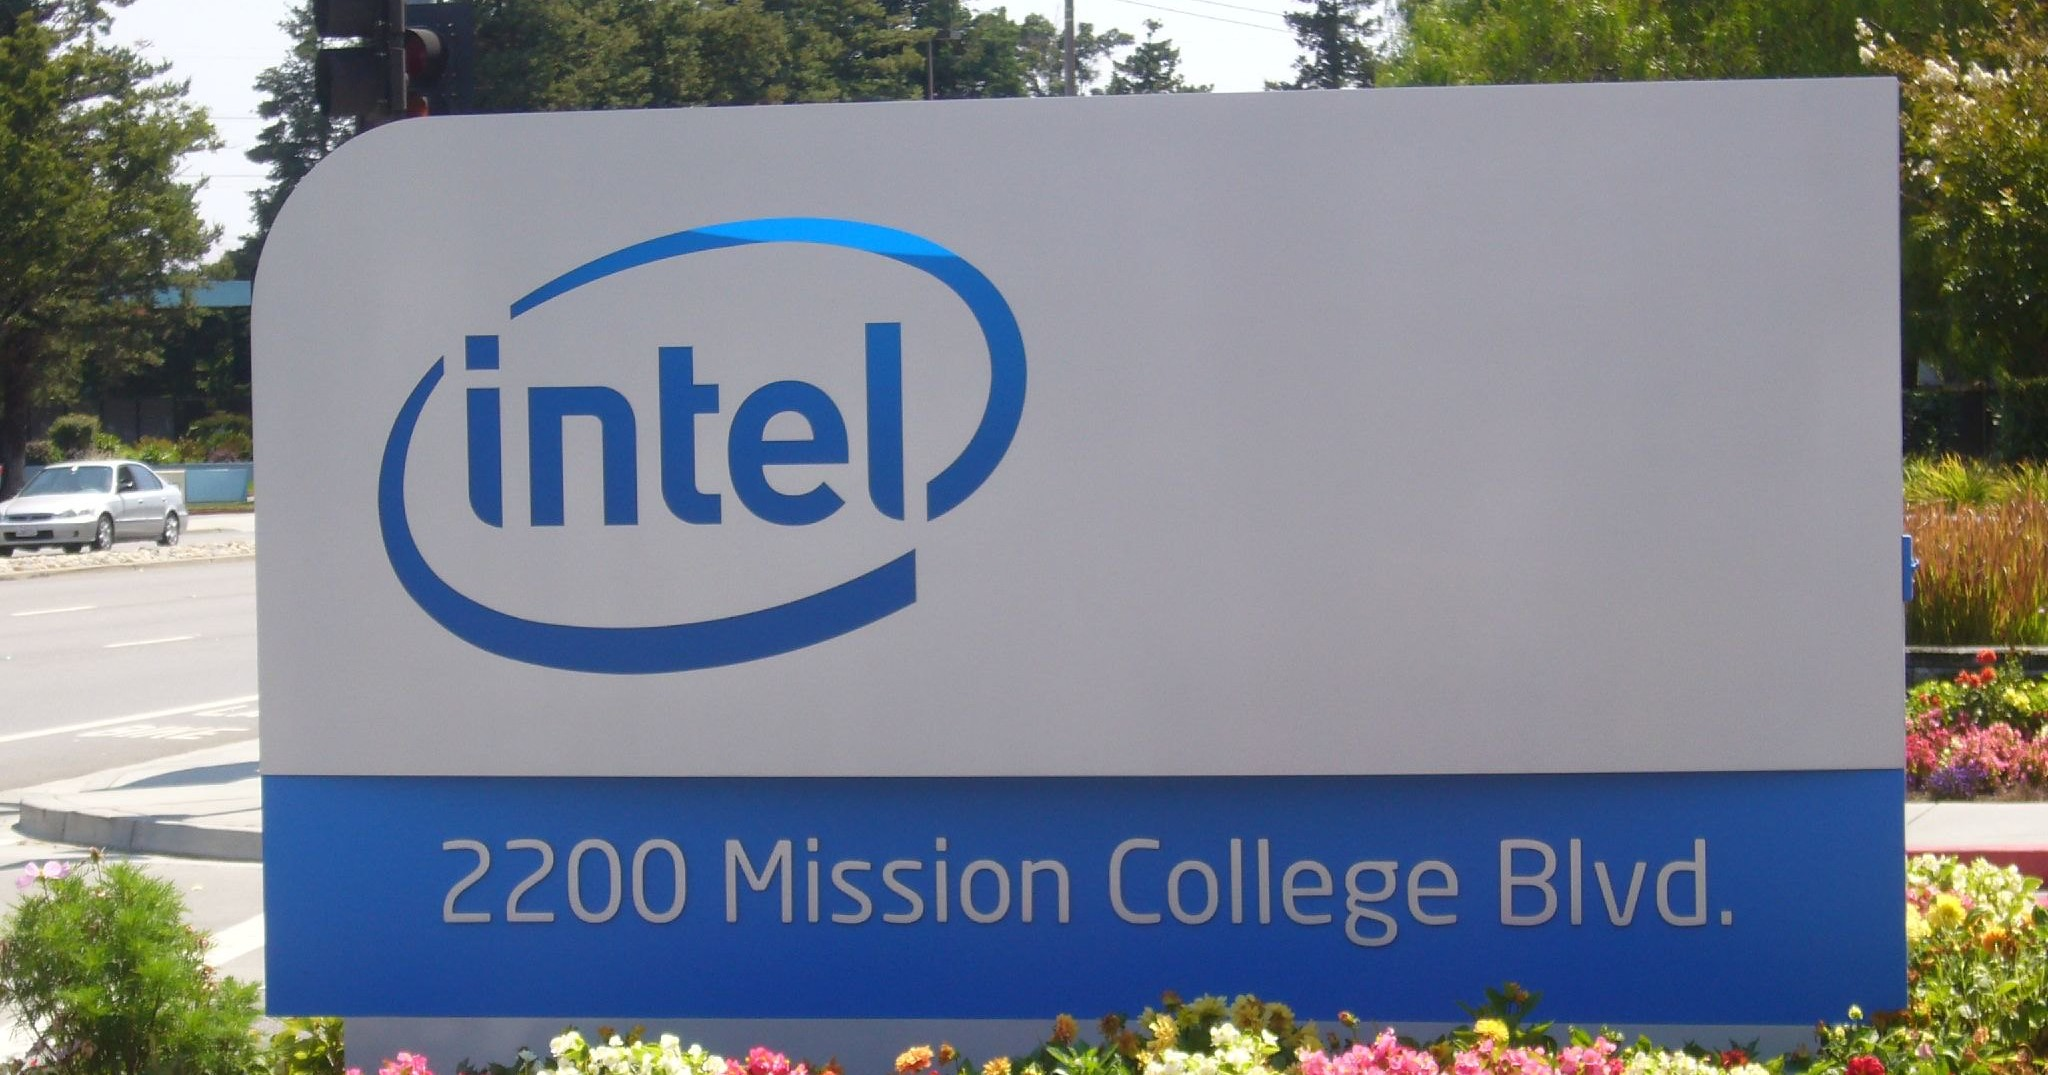 Intel outdoor sign with logo